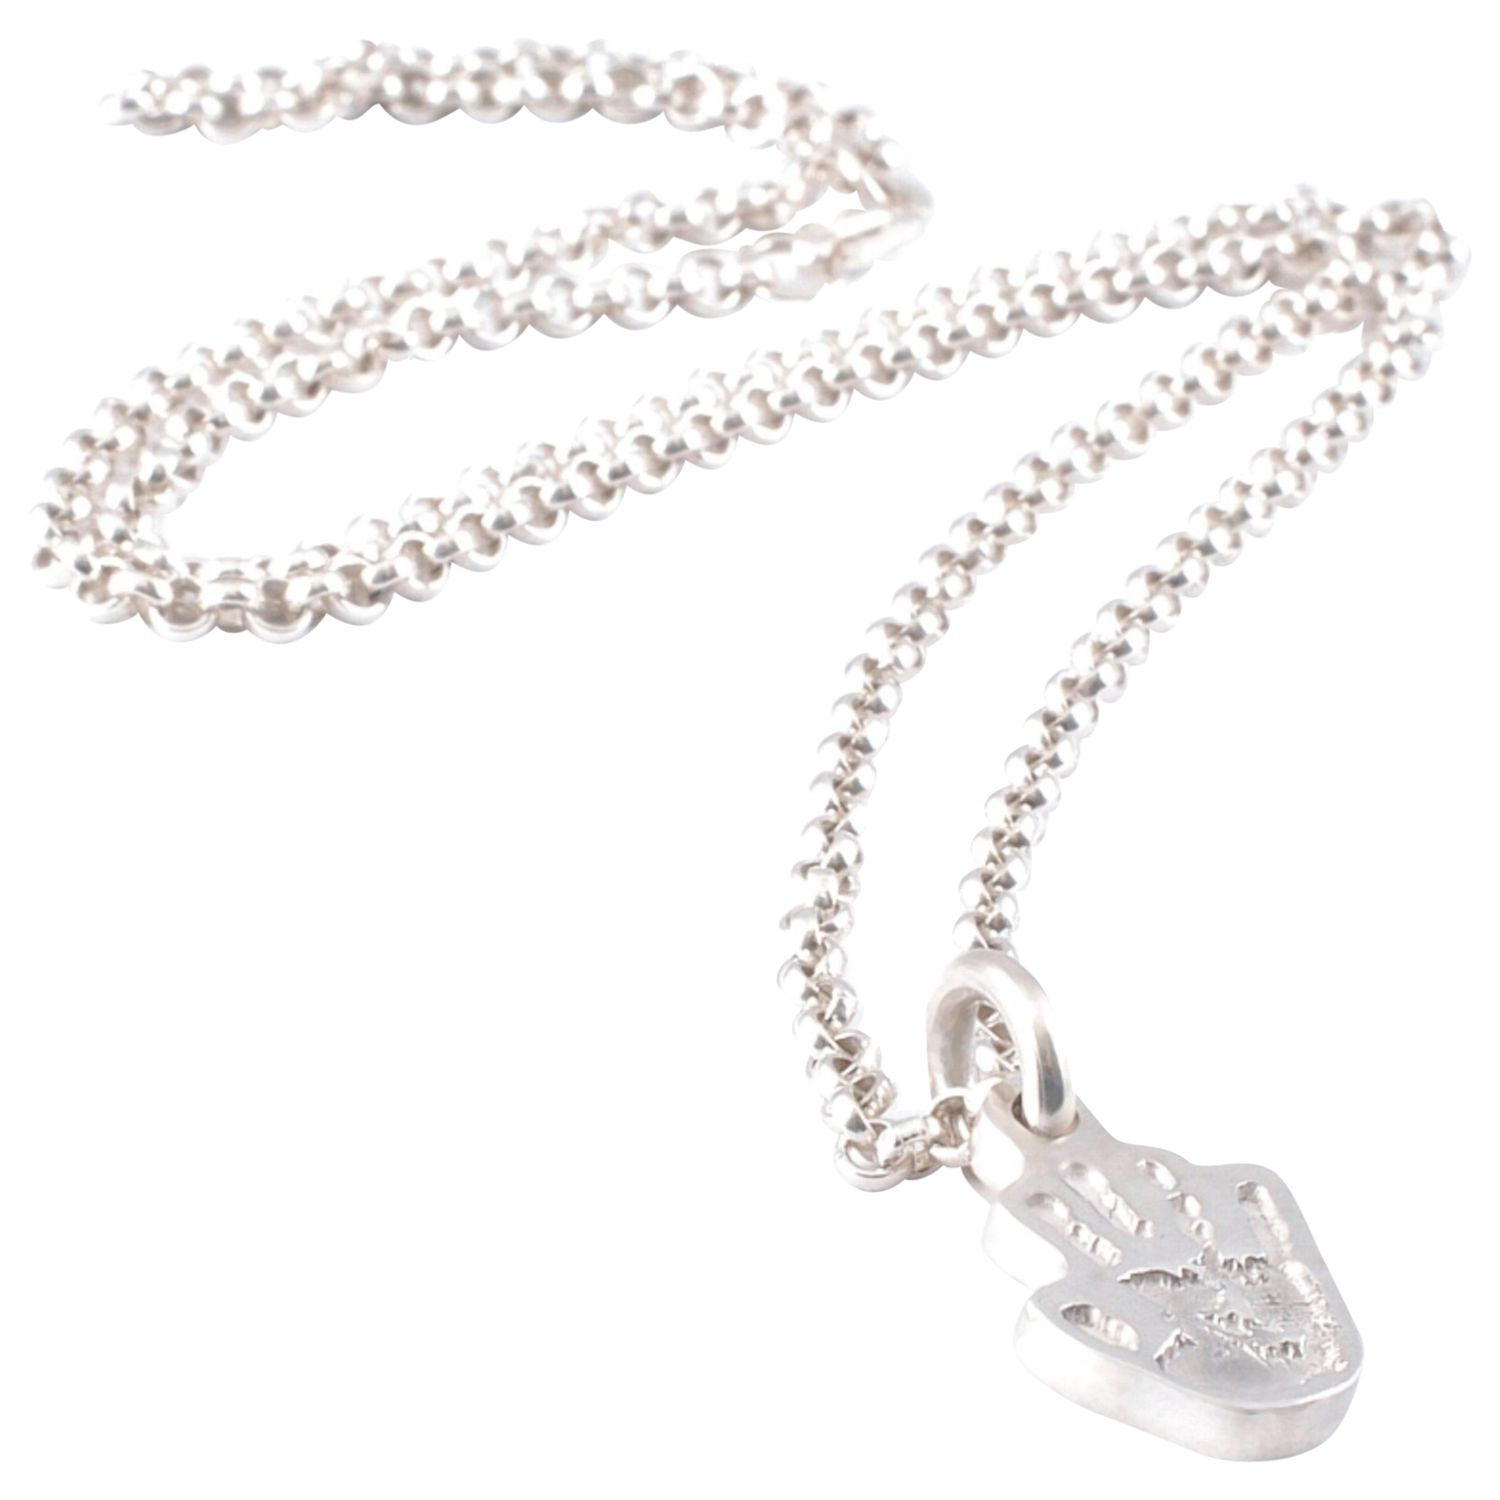 FingerPrint Jewellery FingerPrint Jewellery Single Handprint Charm Necklace, Silver